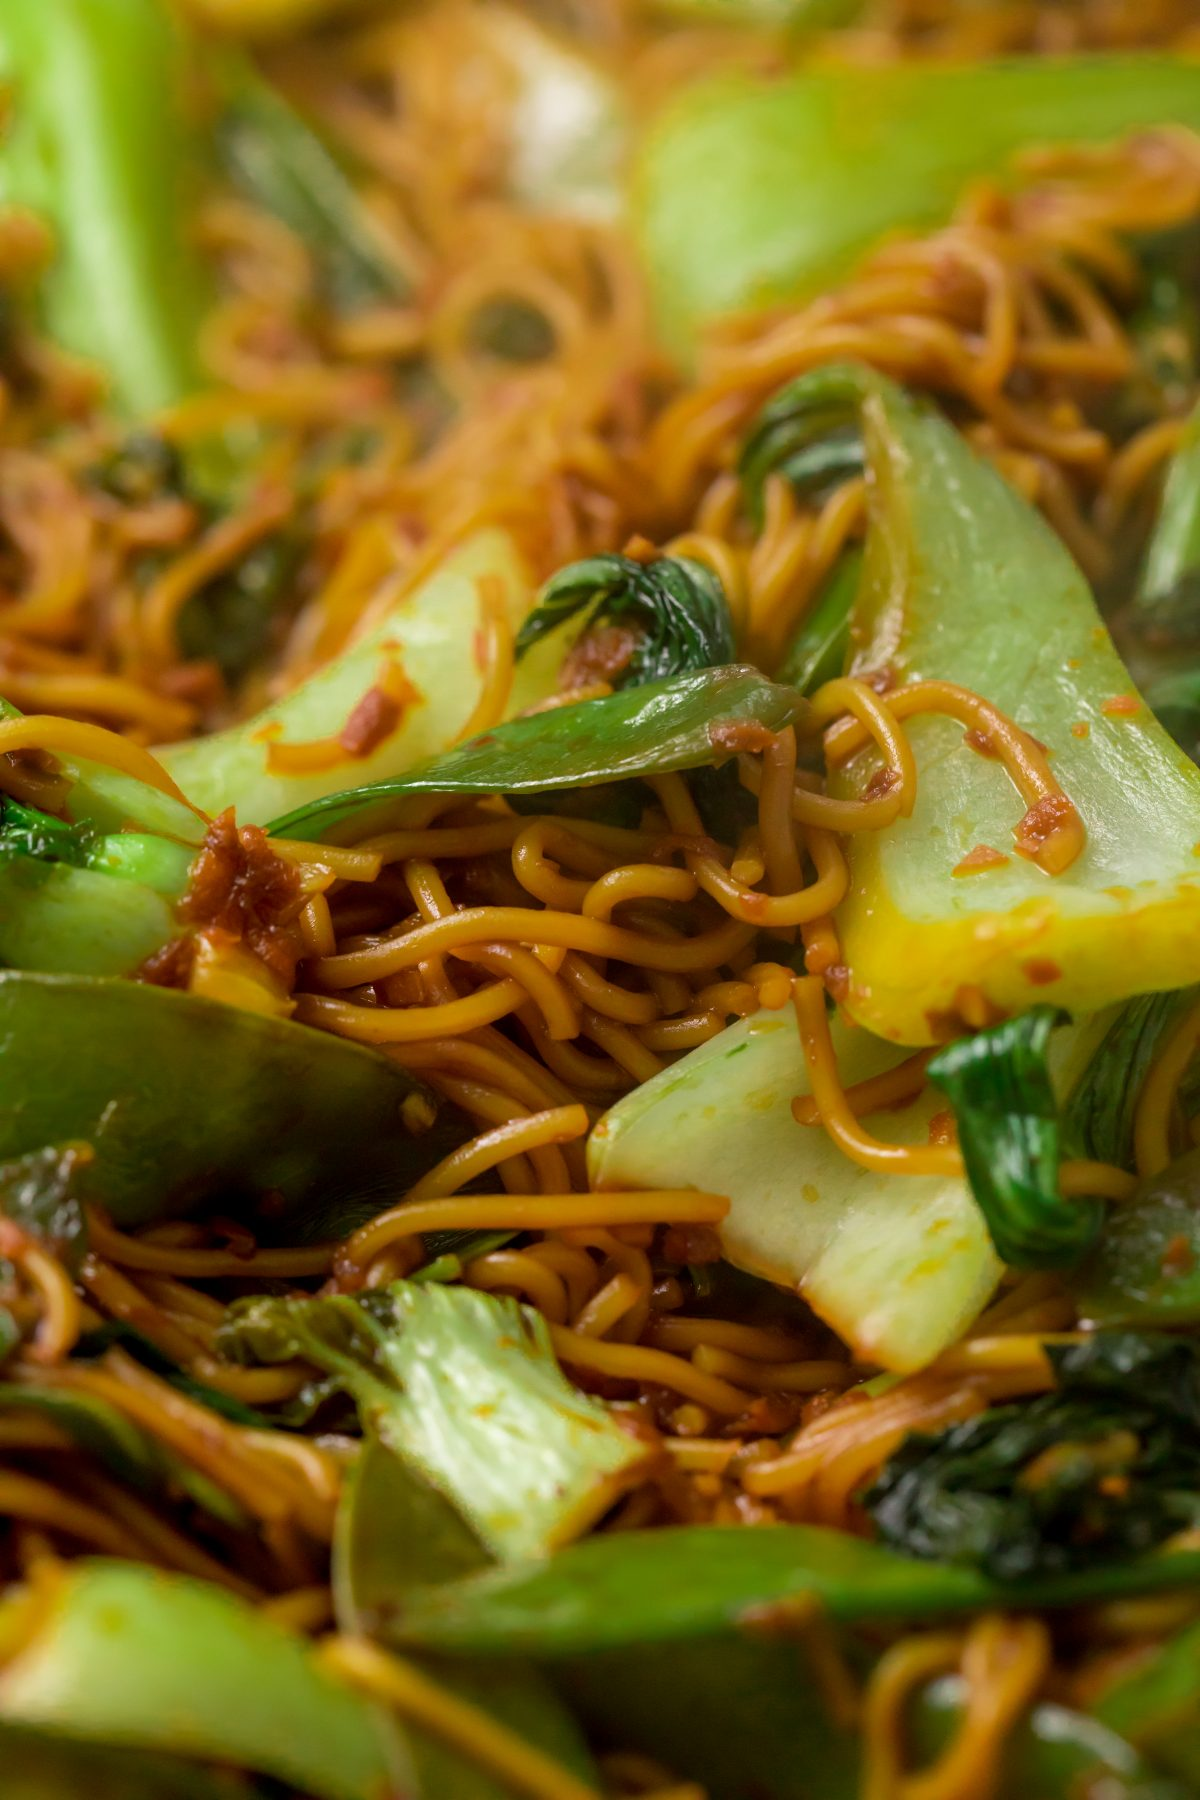 5D4B1567 - Salmon Yakisoba with Blood Oranges - Transfer the noodles and vegetables to a serving platter